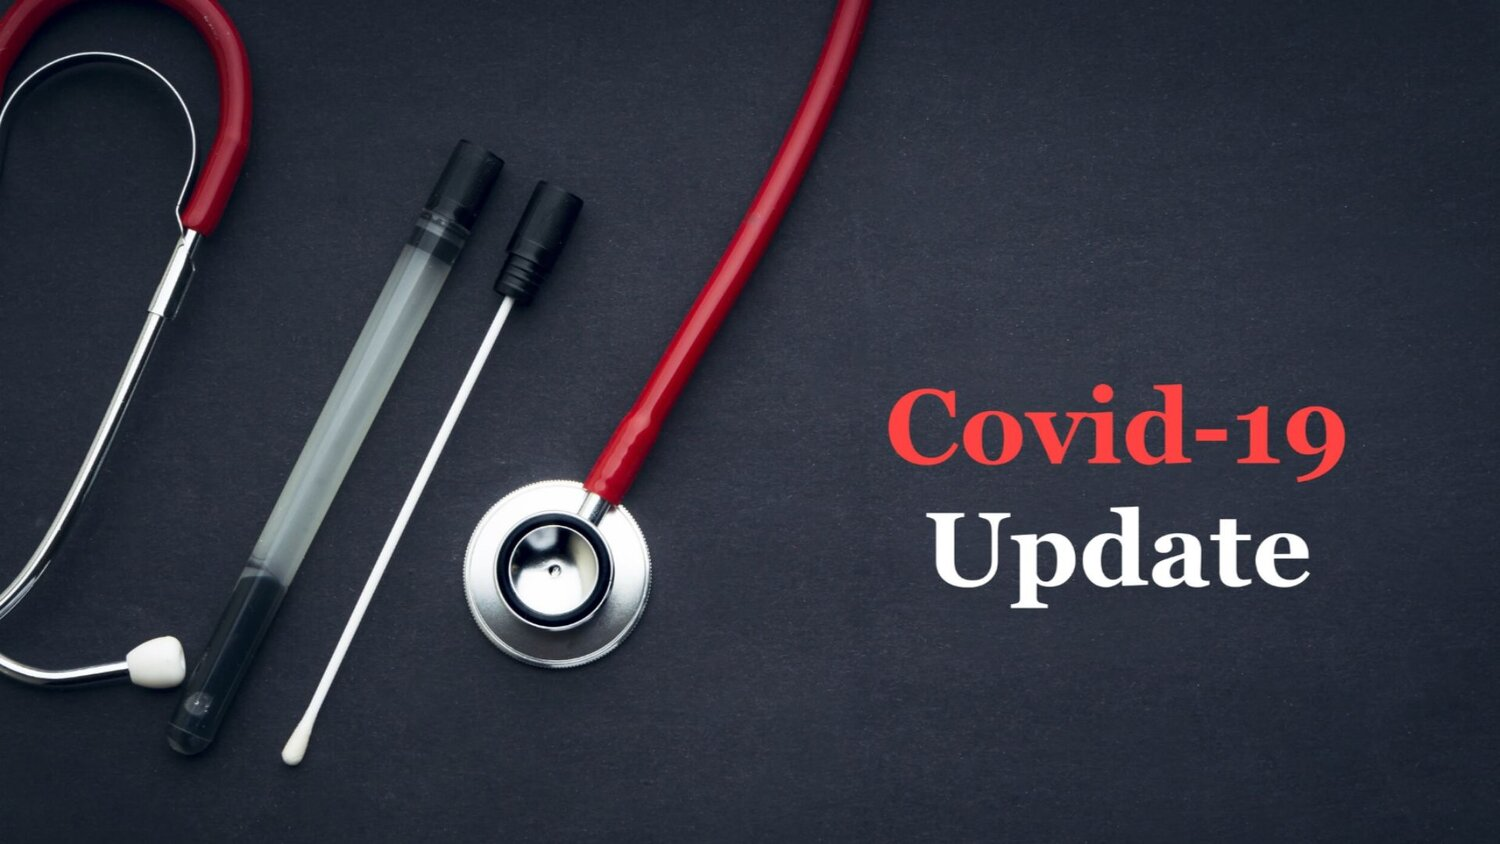 Covid-19 caseload in India climbs to 93,51,109